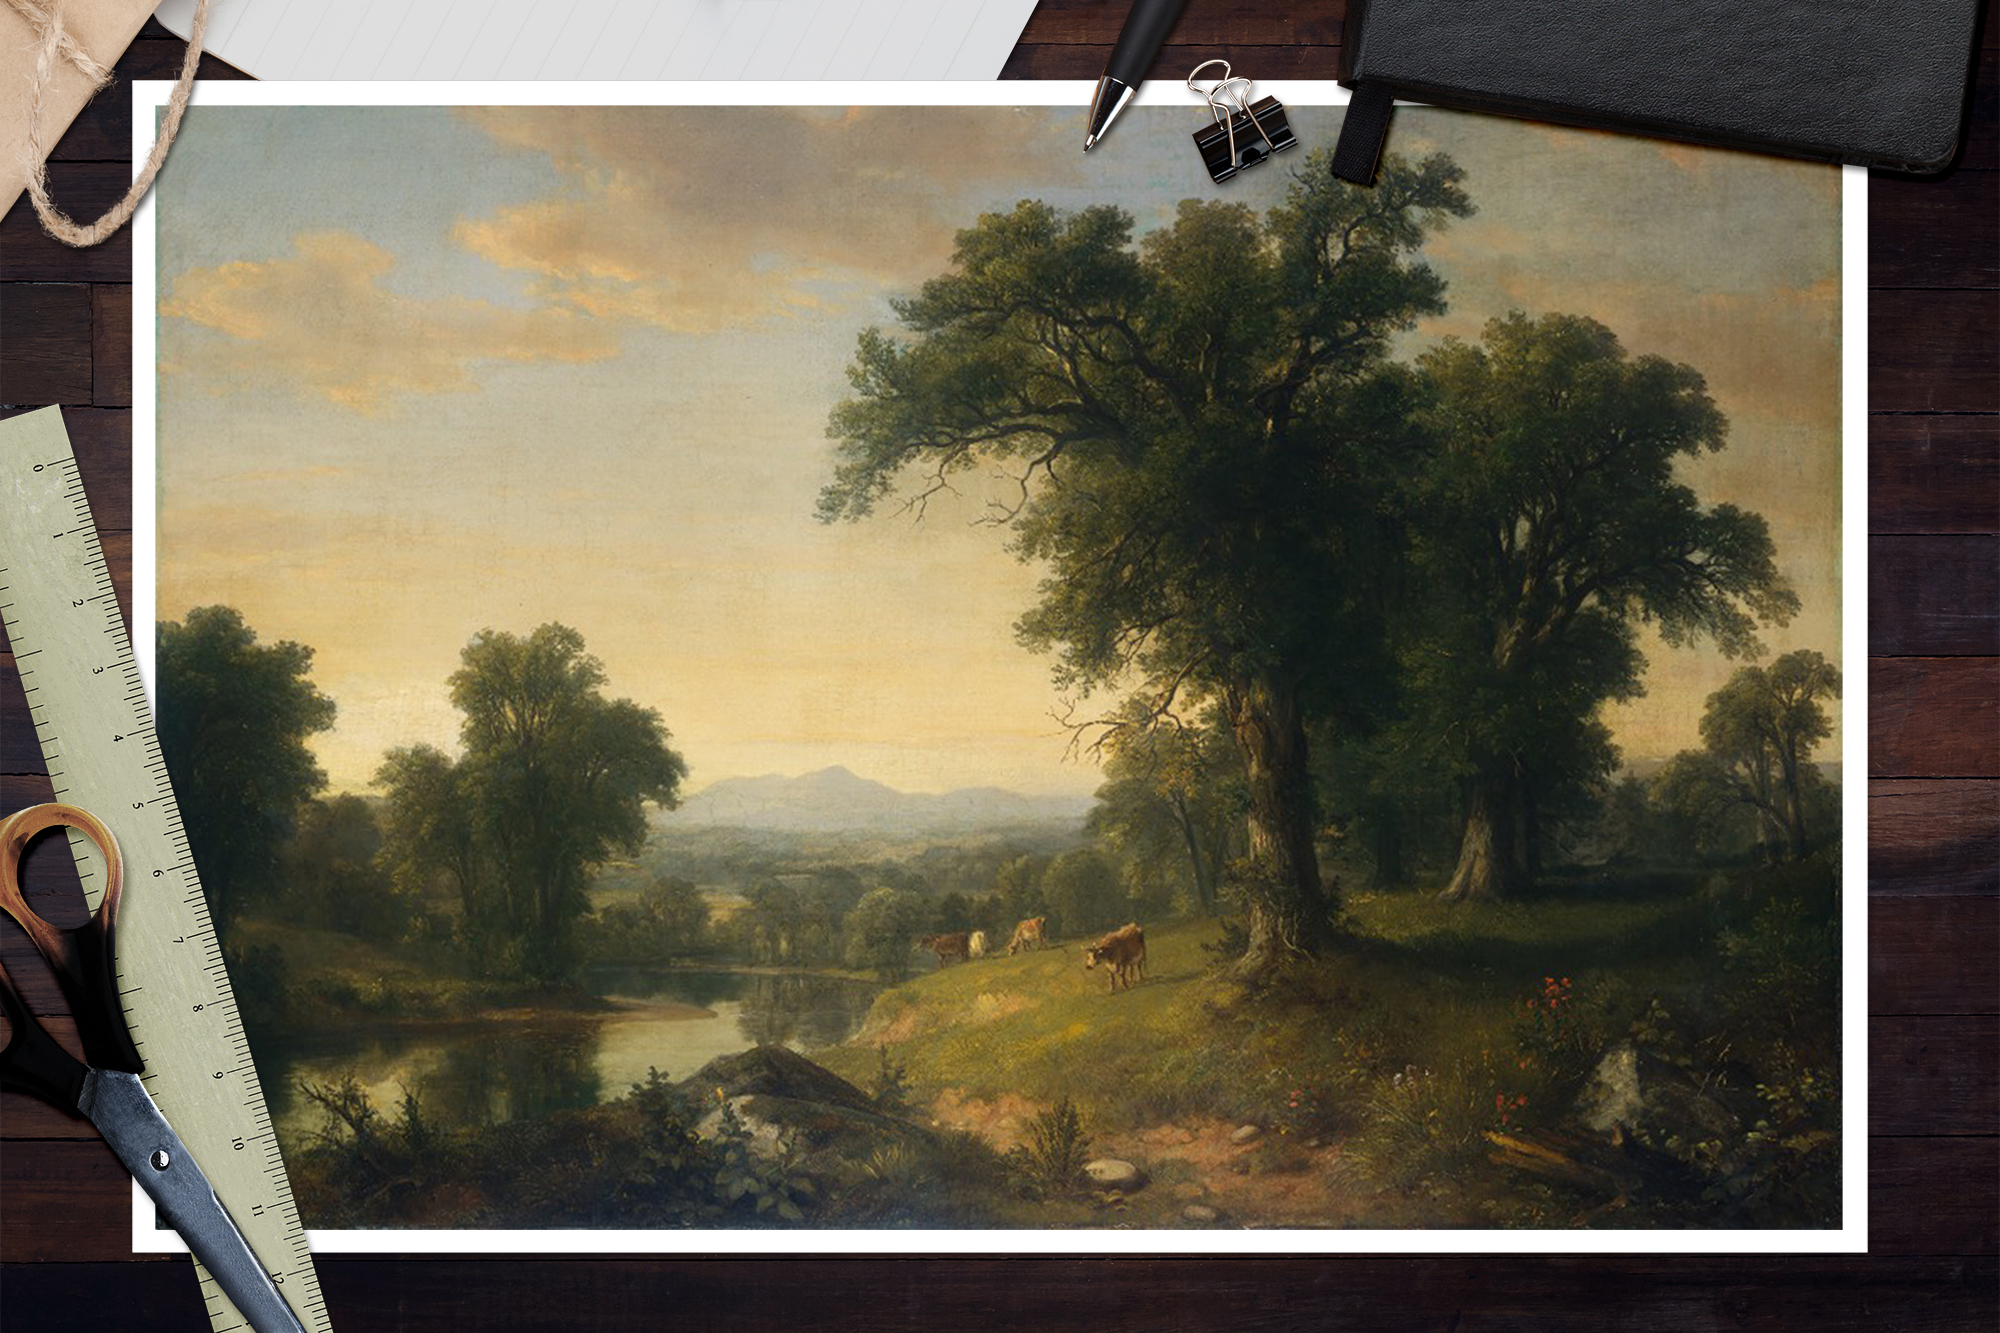 Pastoral Landscape by Asher Brown Durand Giclee Fine ArtPrint Repro on Canvas